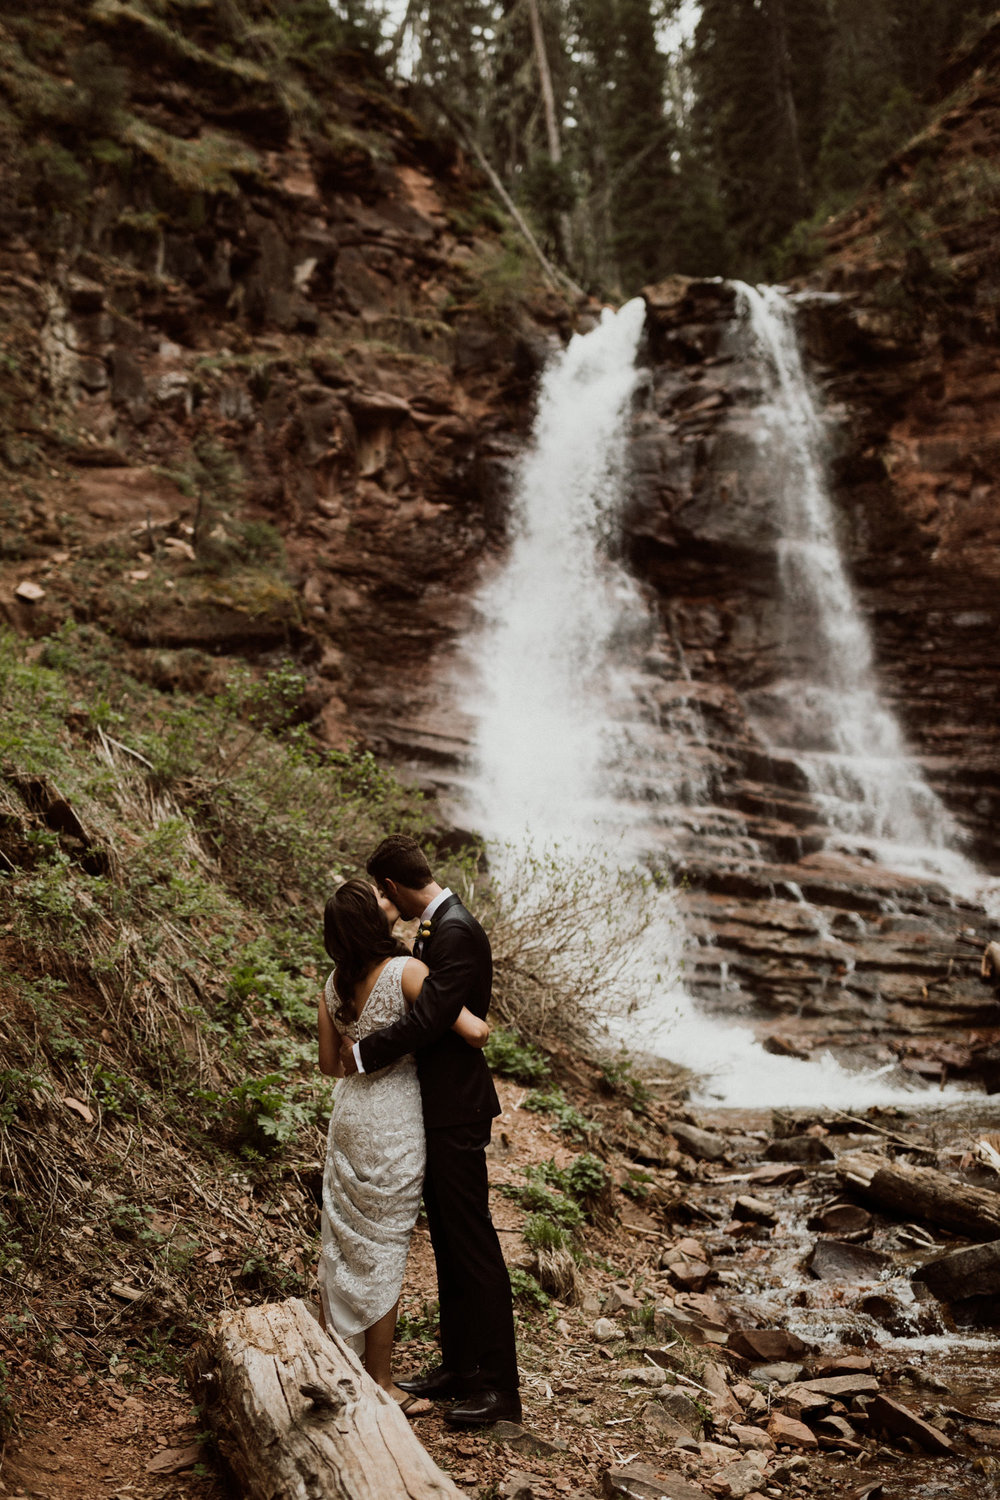 dunton-hot-springs-wedding-colorado-44.jpg